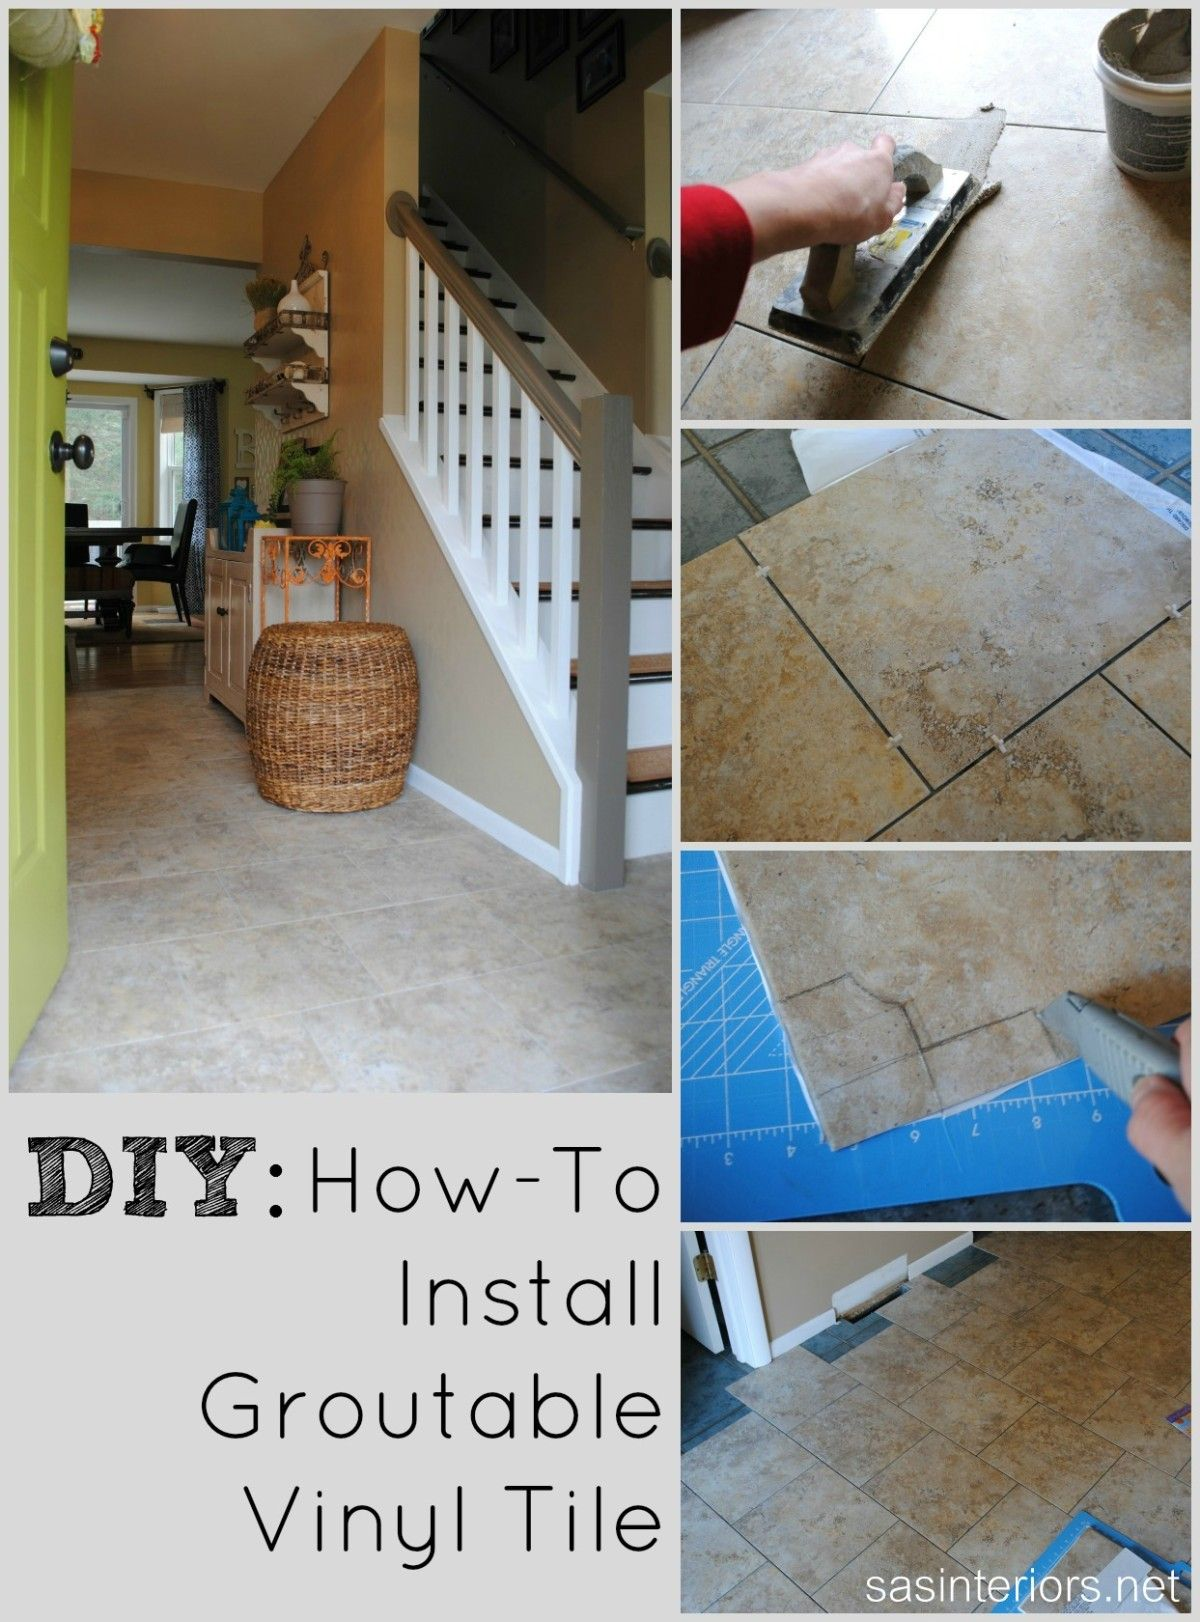 Do it yourself how to install luxury vinyl tile that you can do it yourself how to install luxury vinyl tile that you can grout it dailygadgetfo Images